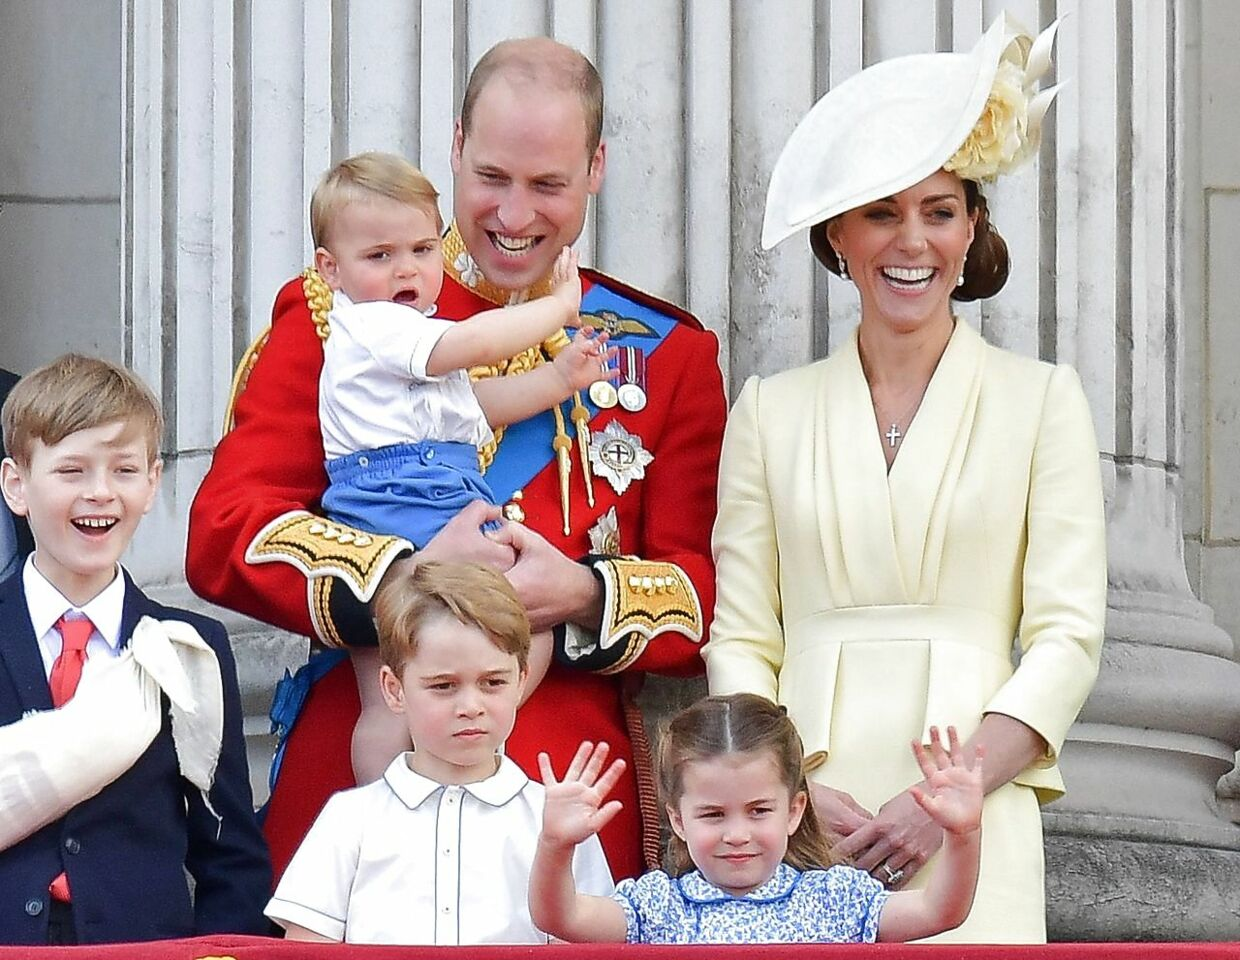 Her ses Albert Windsor sammen med prins William, hertuginde Kate og deres tre børn - George, Charlotte og Louis.